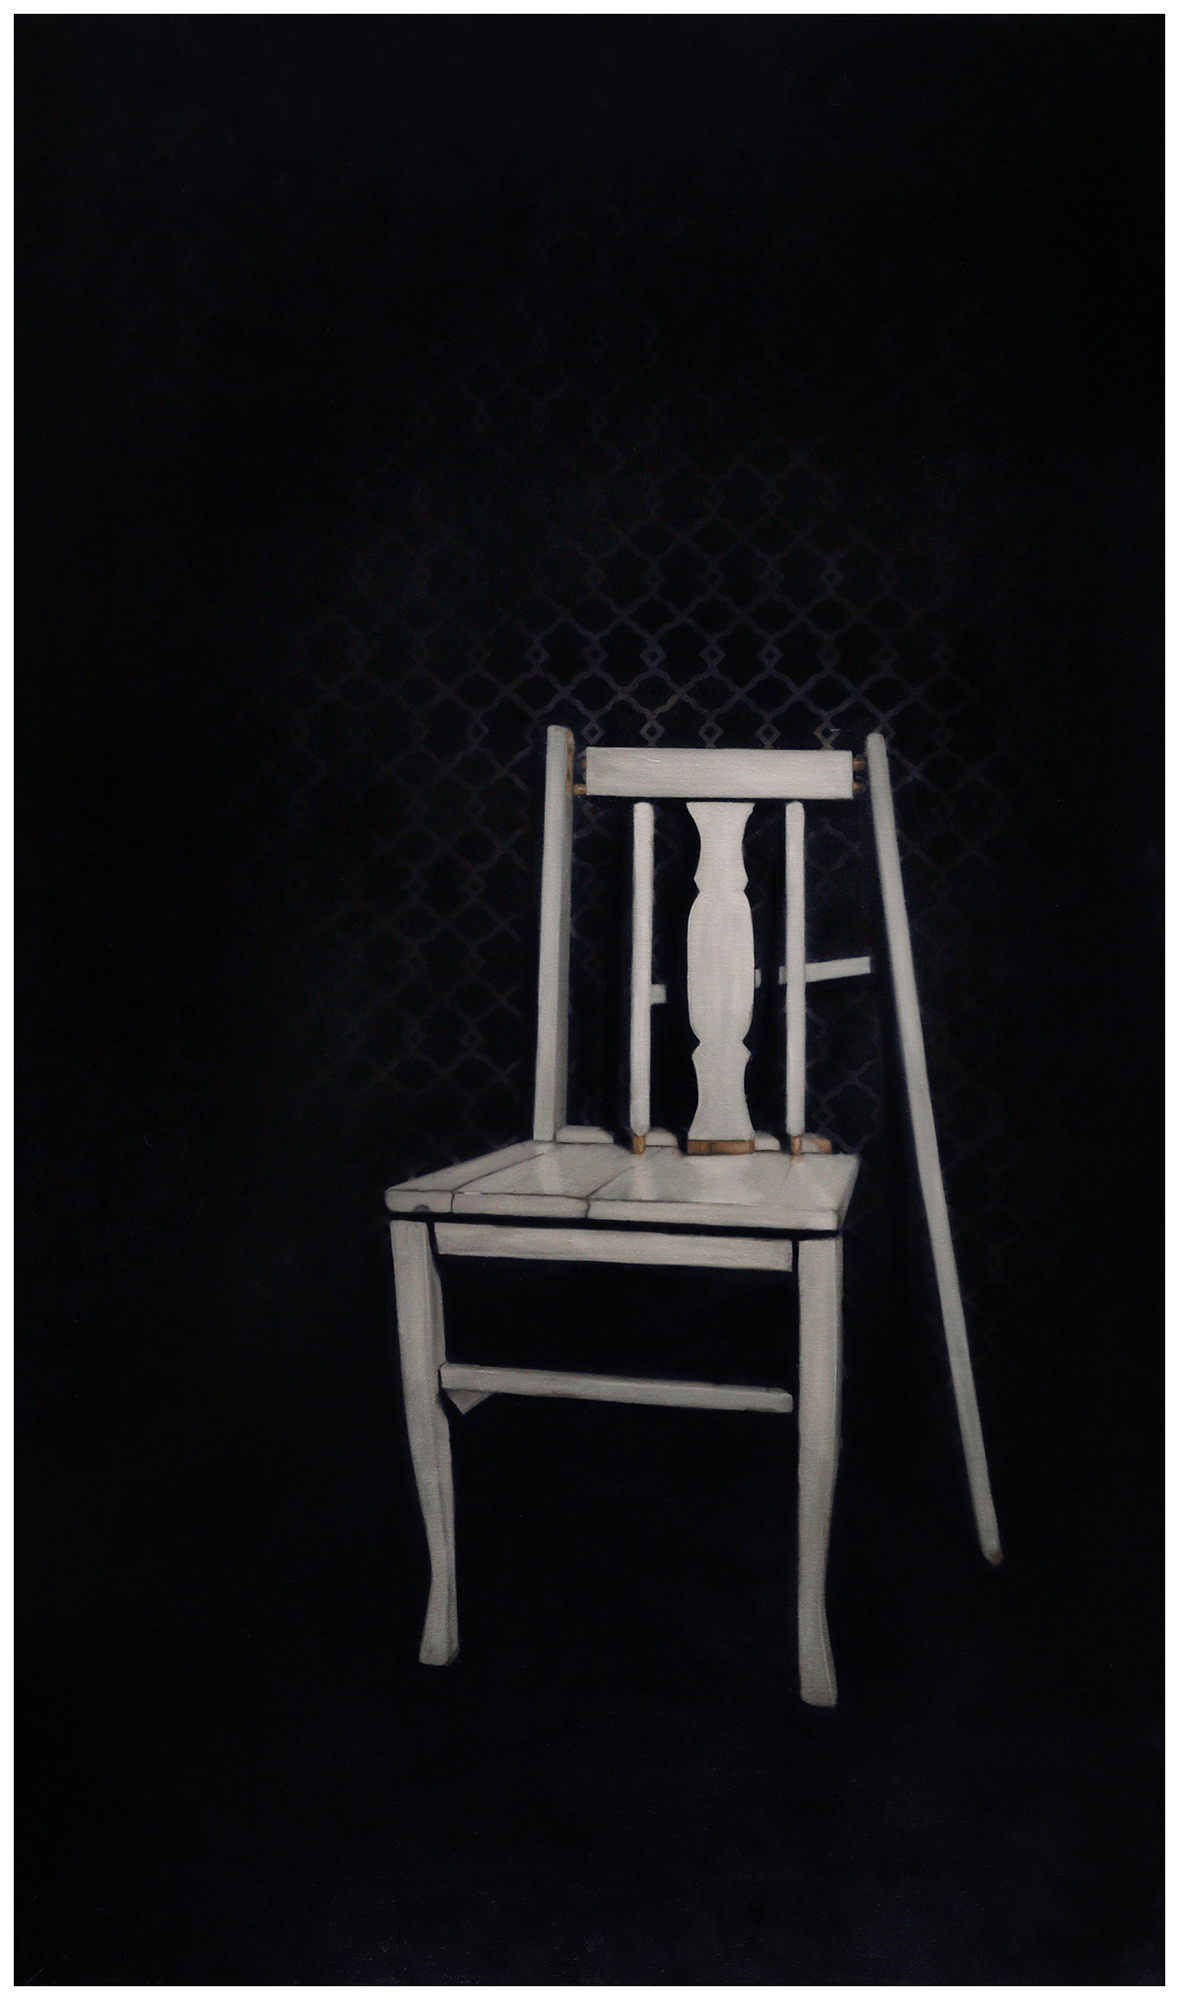 Broken Chair I